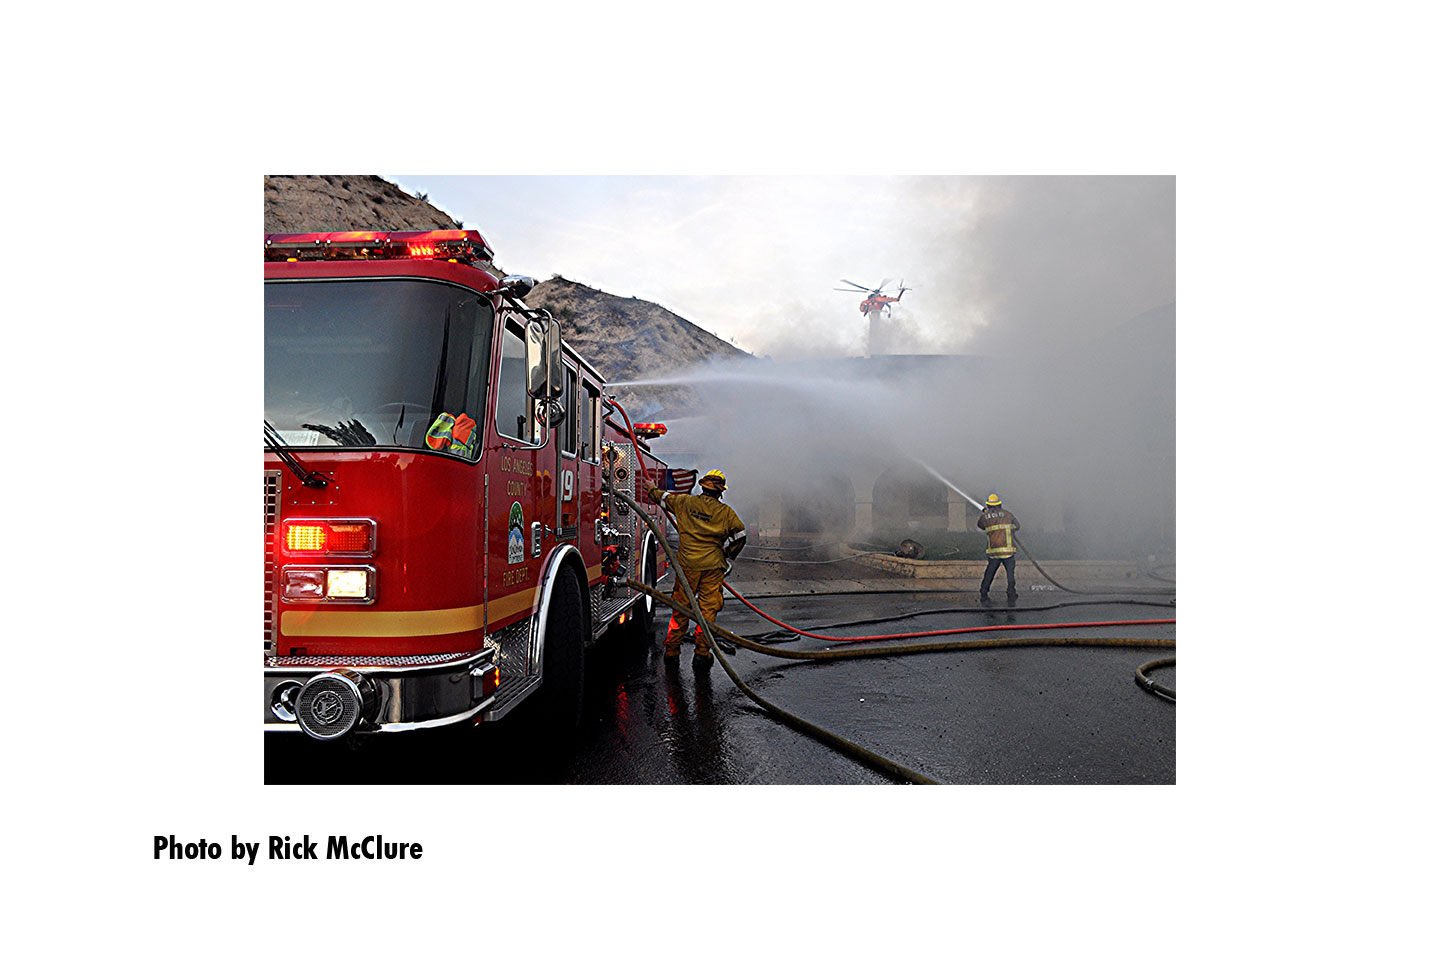 Fire apparatus with firefighters and streams with a helicopter in the background